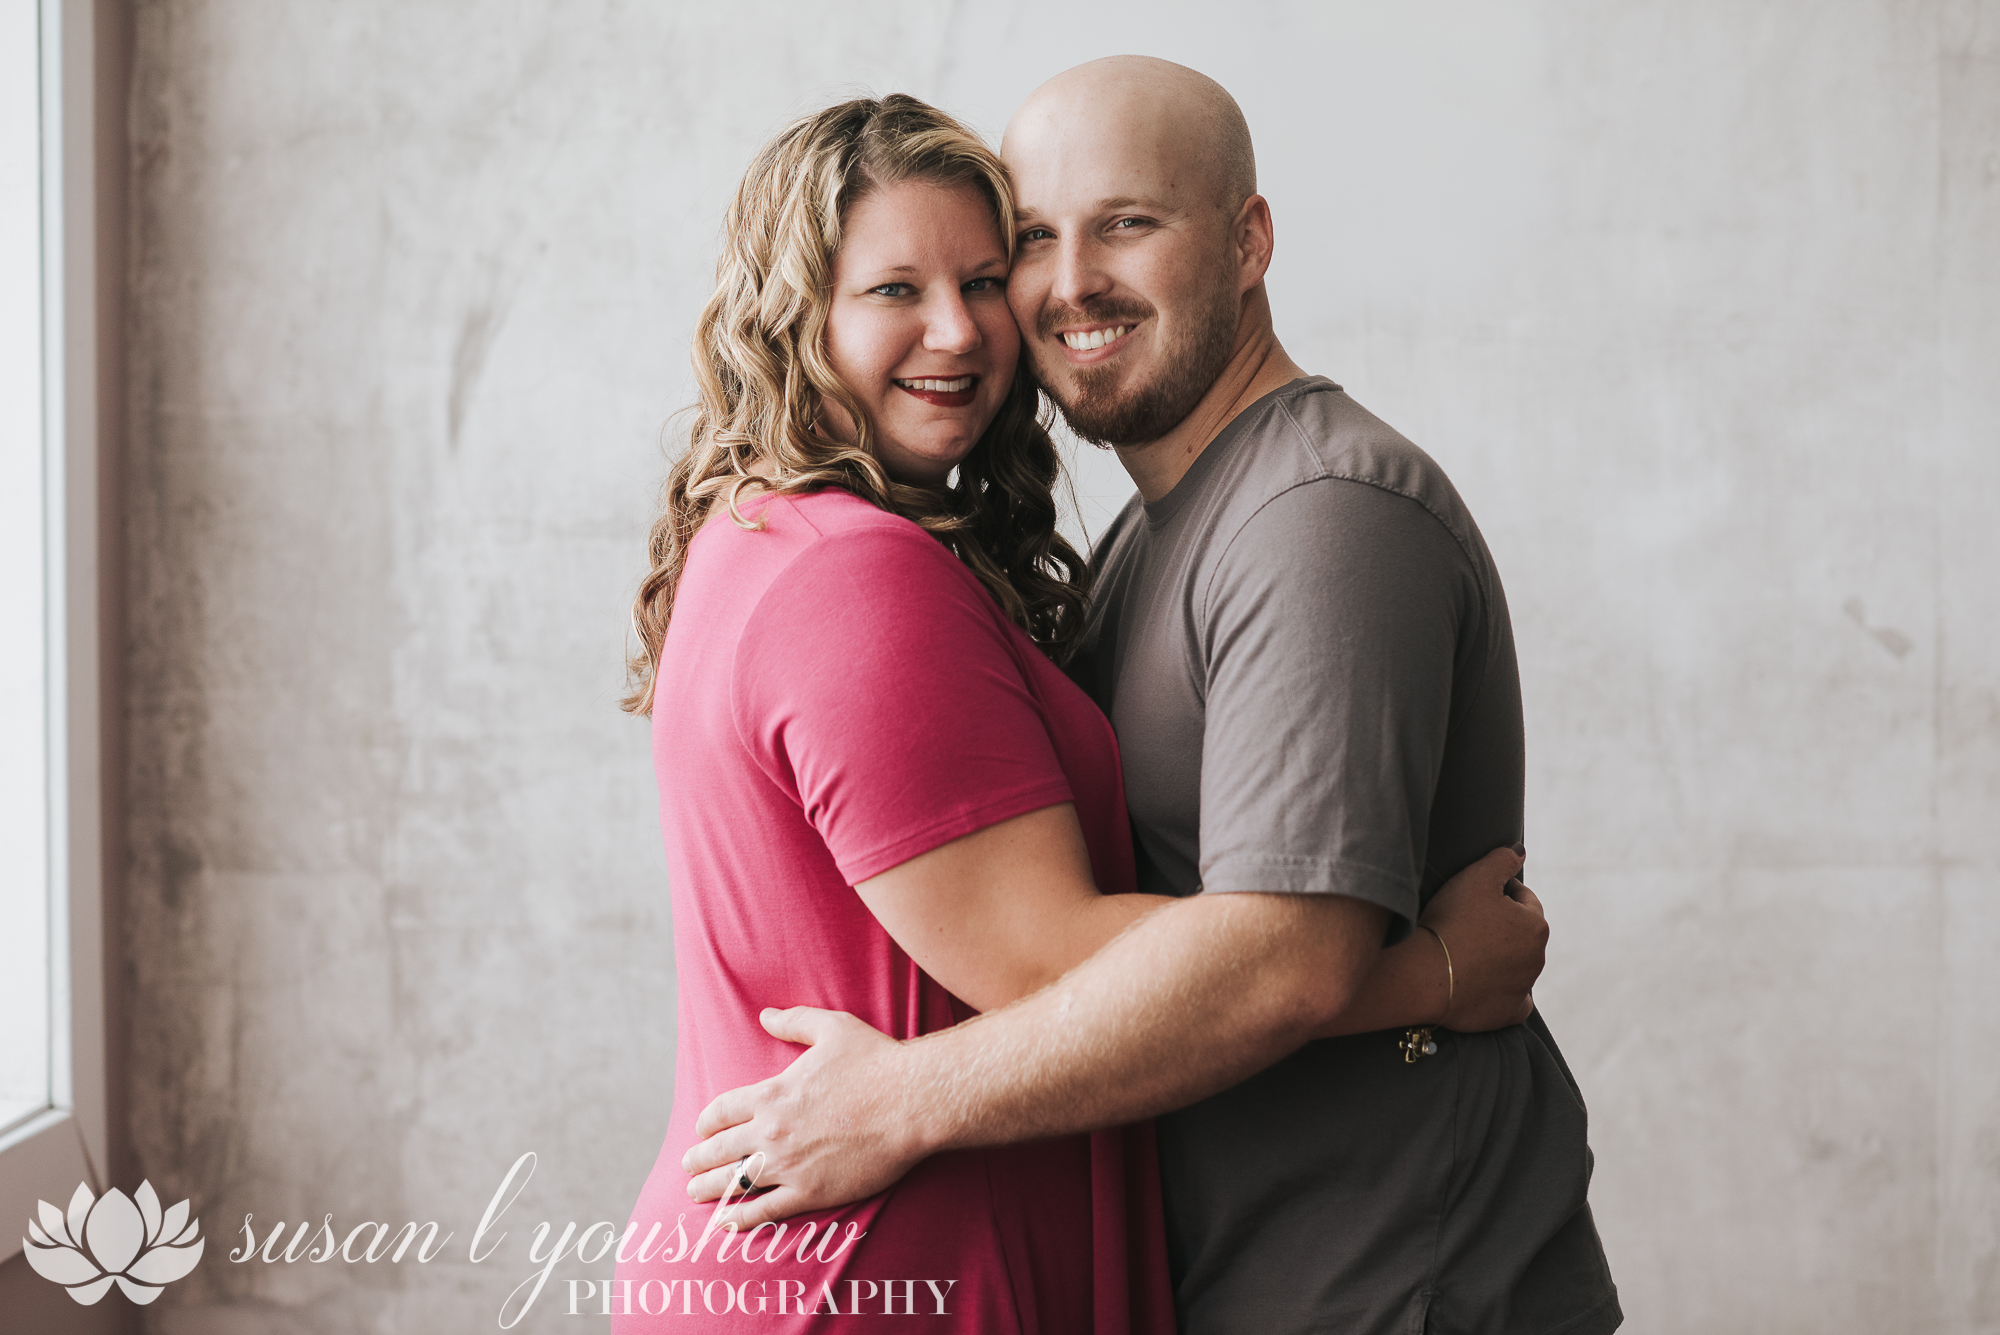 BLOG Love Mini Sessions 06-28-2018 SLY Photography LLC-12.jpg